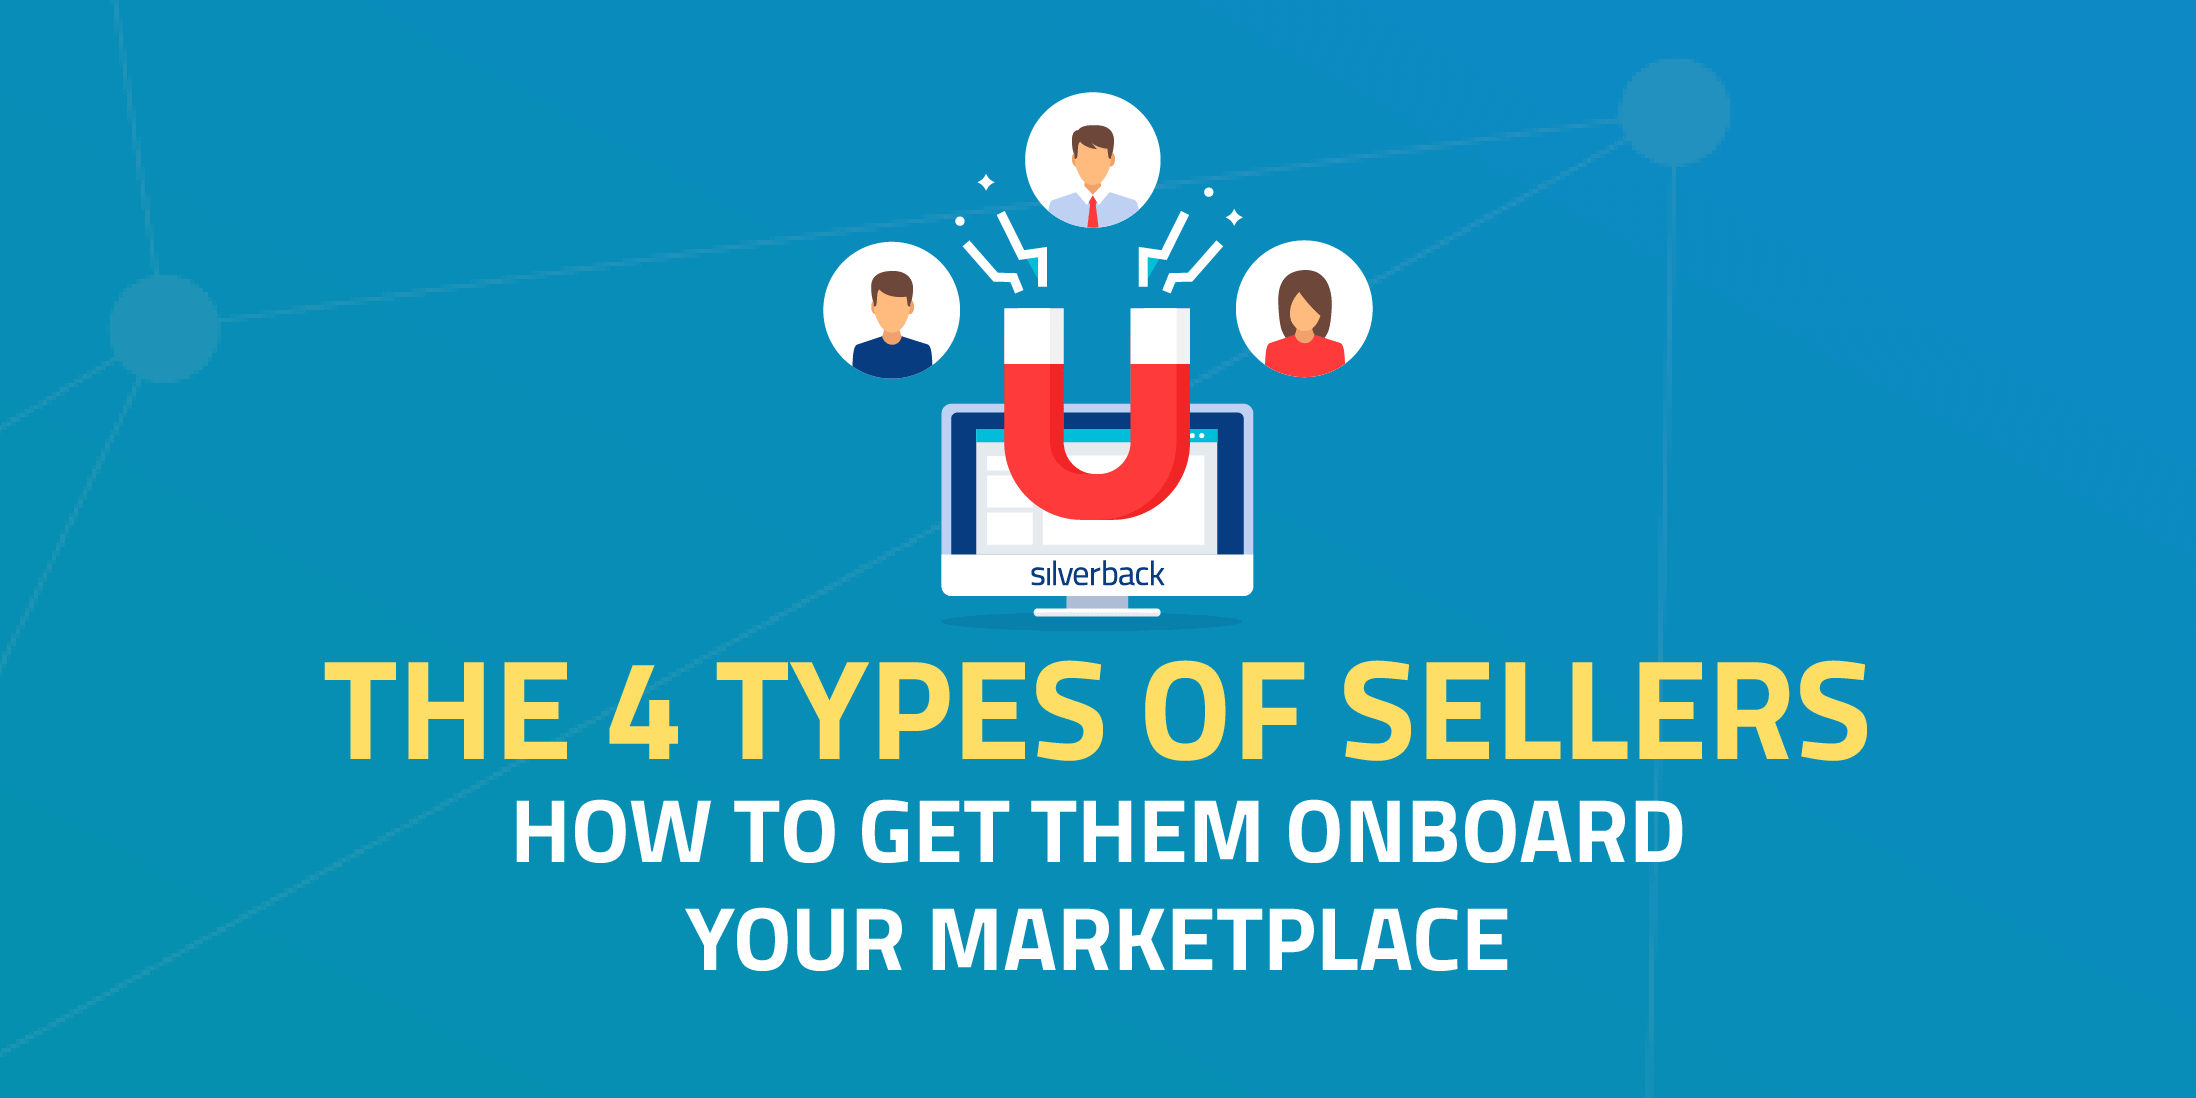 The 4 types of sellers: How to get them onboard your marketplace